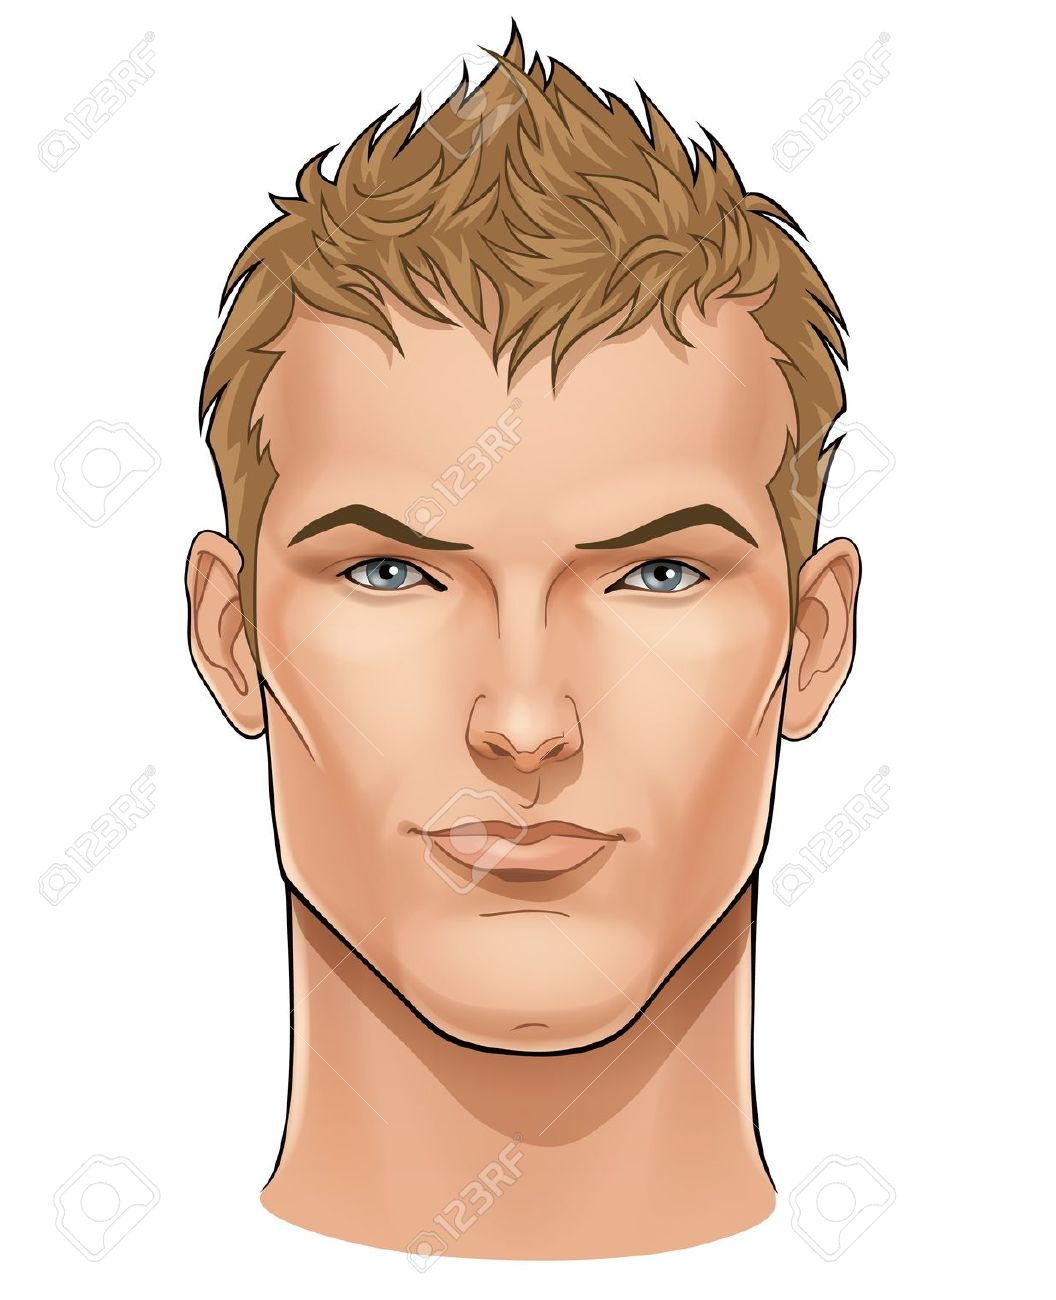 Good looking men clipart images.